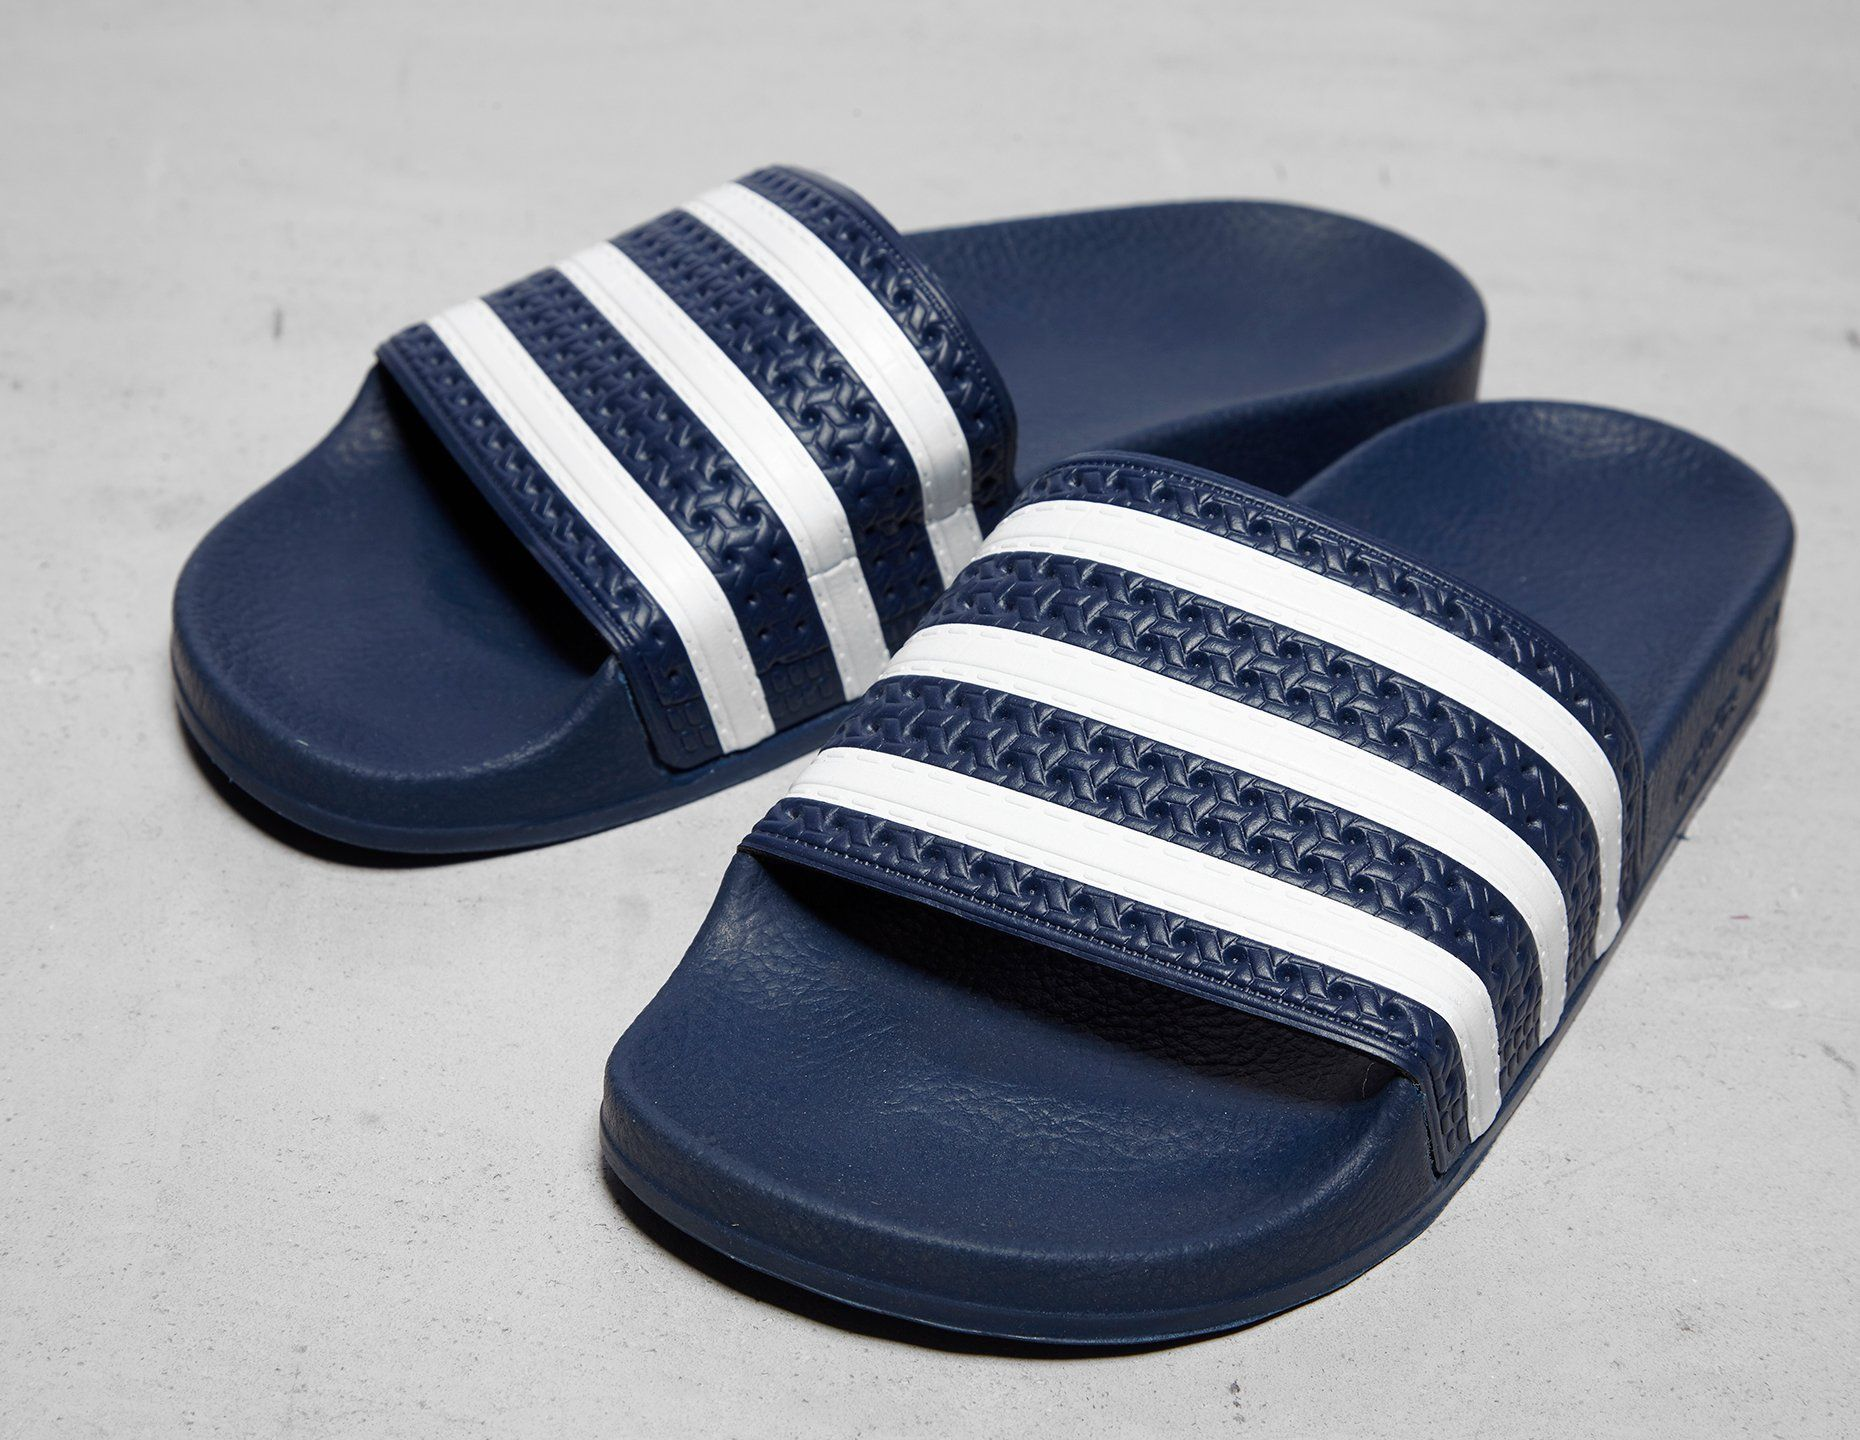 adidas Originals Adilette Slides Women's